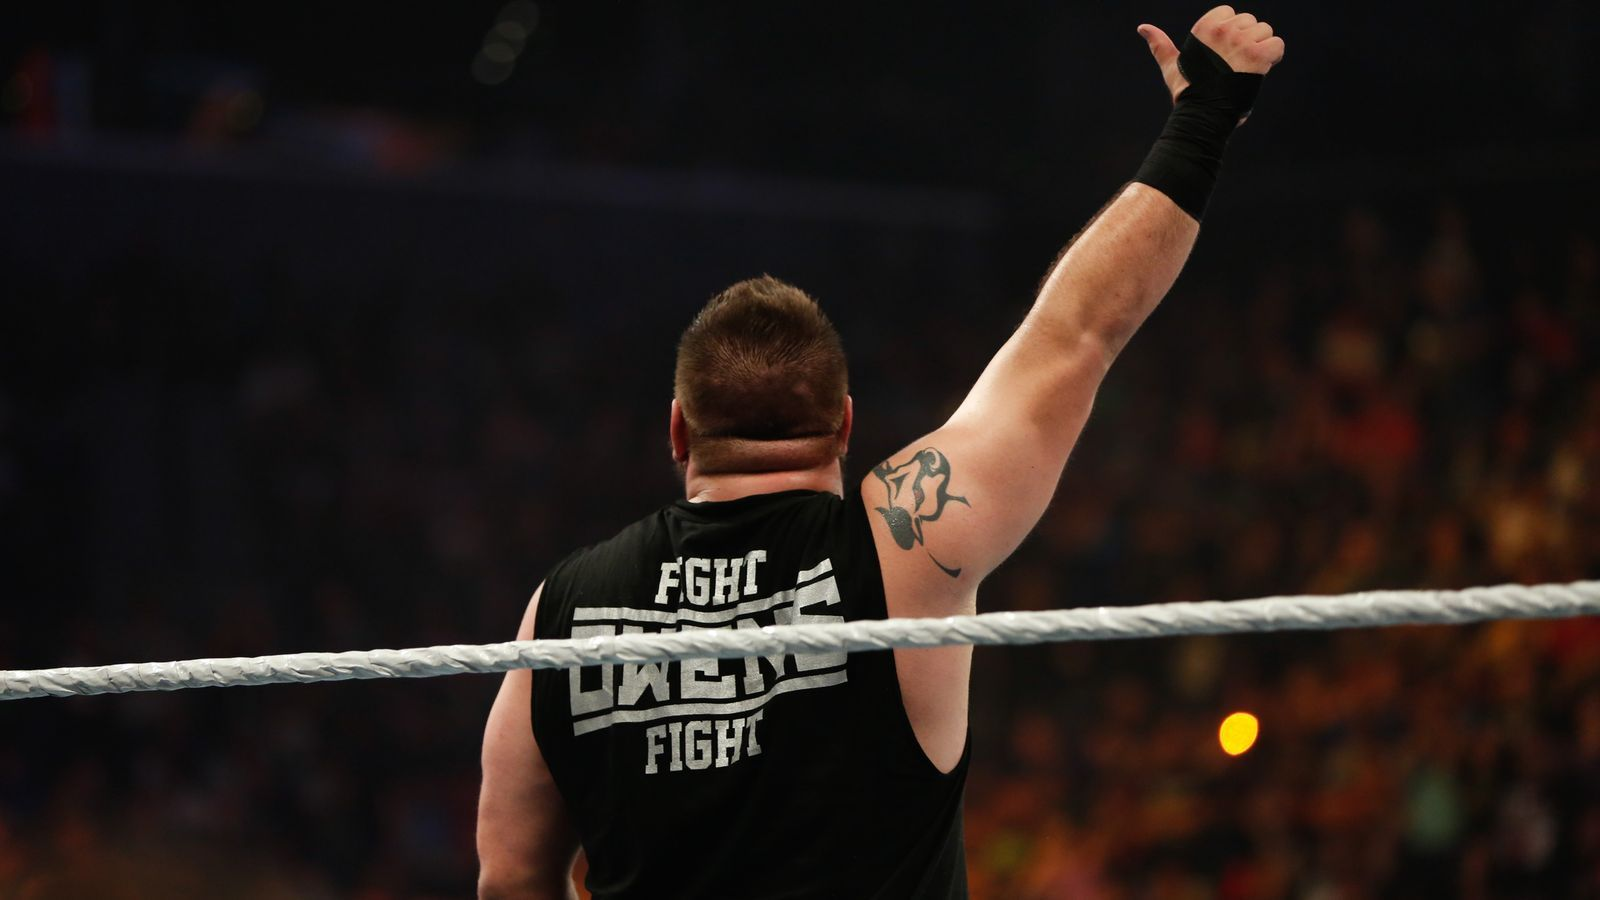 Report: Kevin Owens asked for Undertaker match at WrestleMania 32 but it's not happening - Cageside Seats